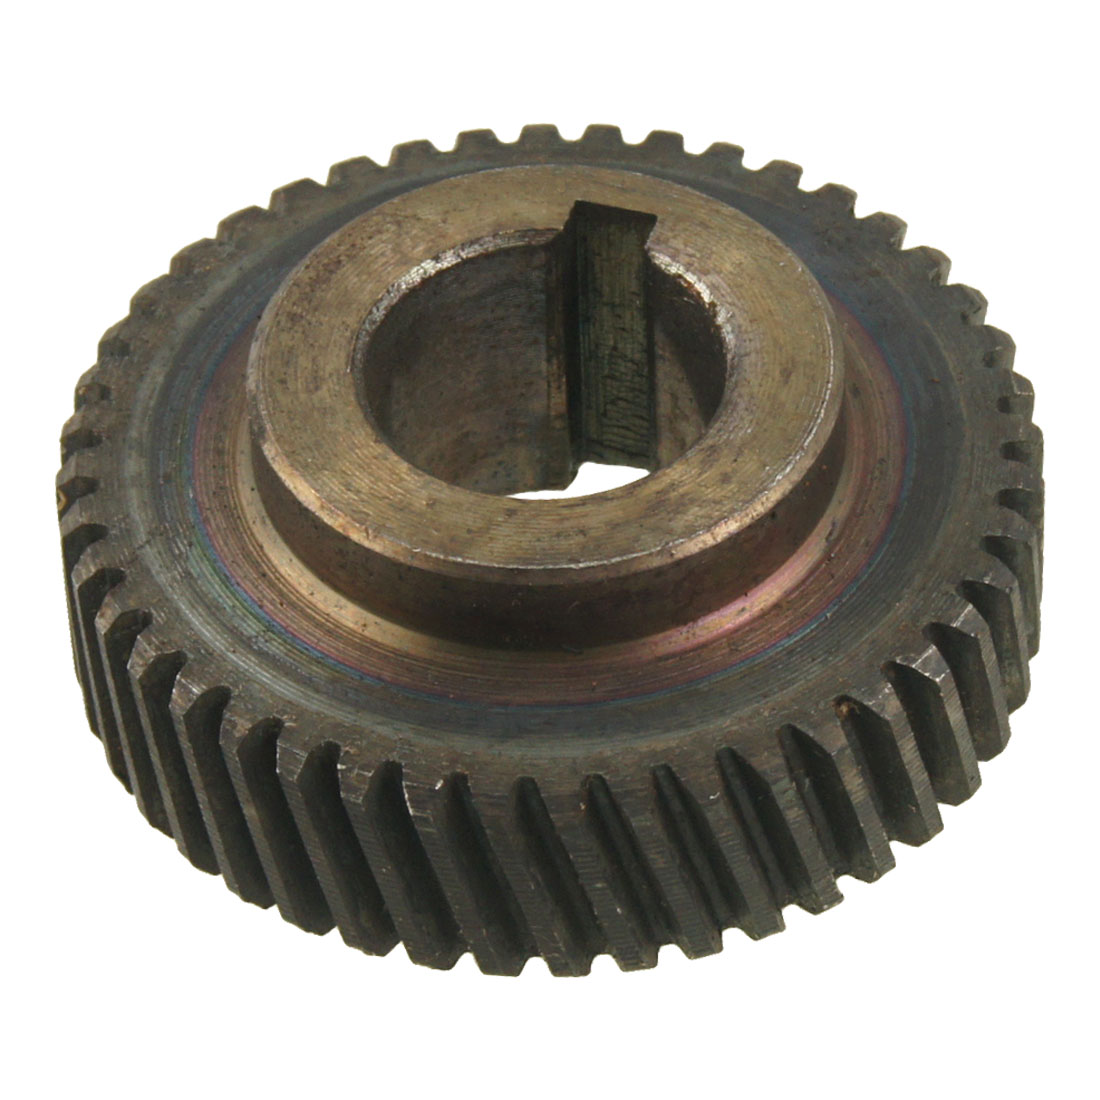 Electric Circular Saw Spiral Bevel Gear for Makita 5900B